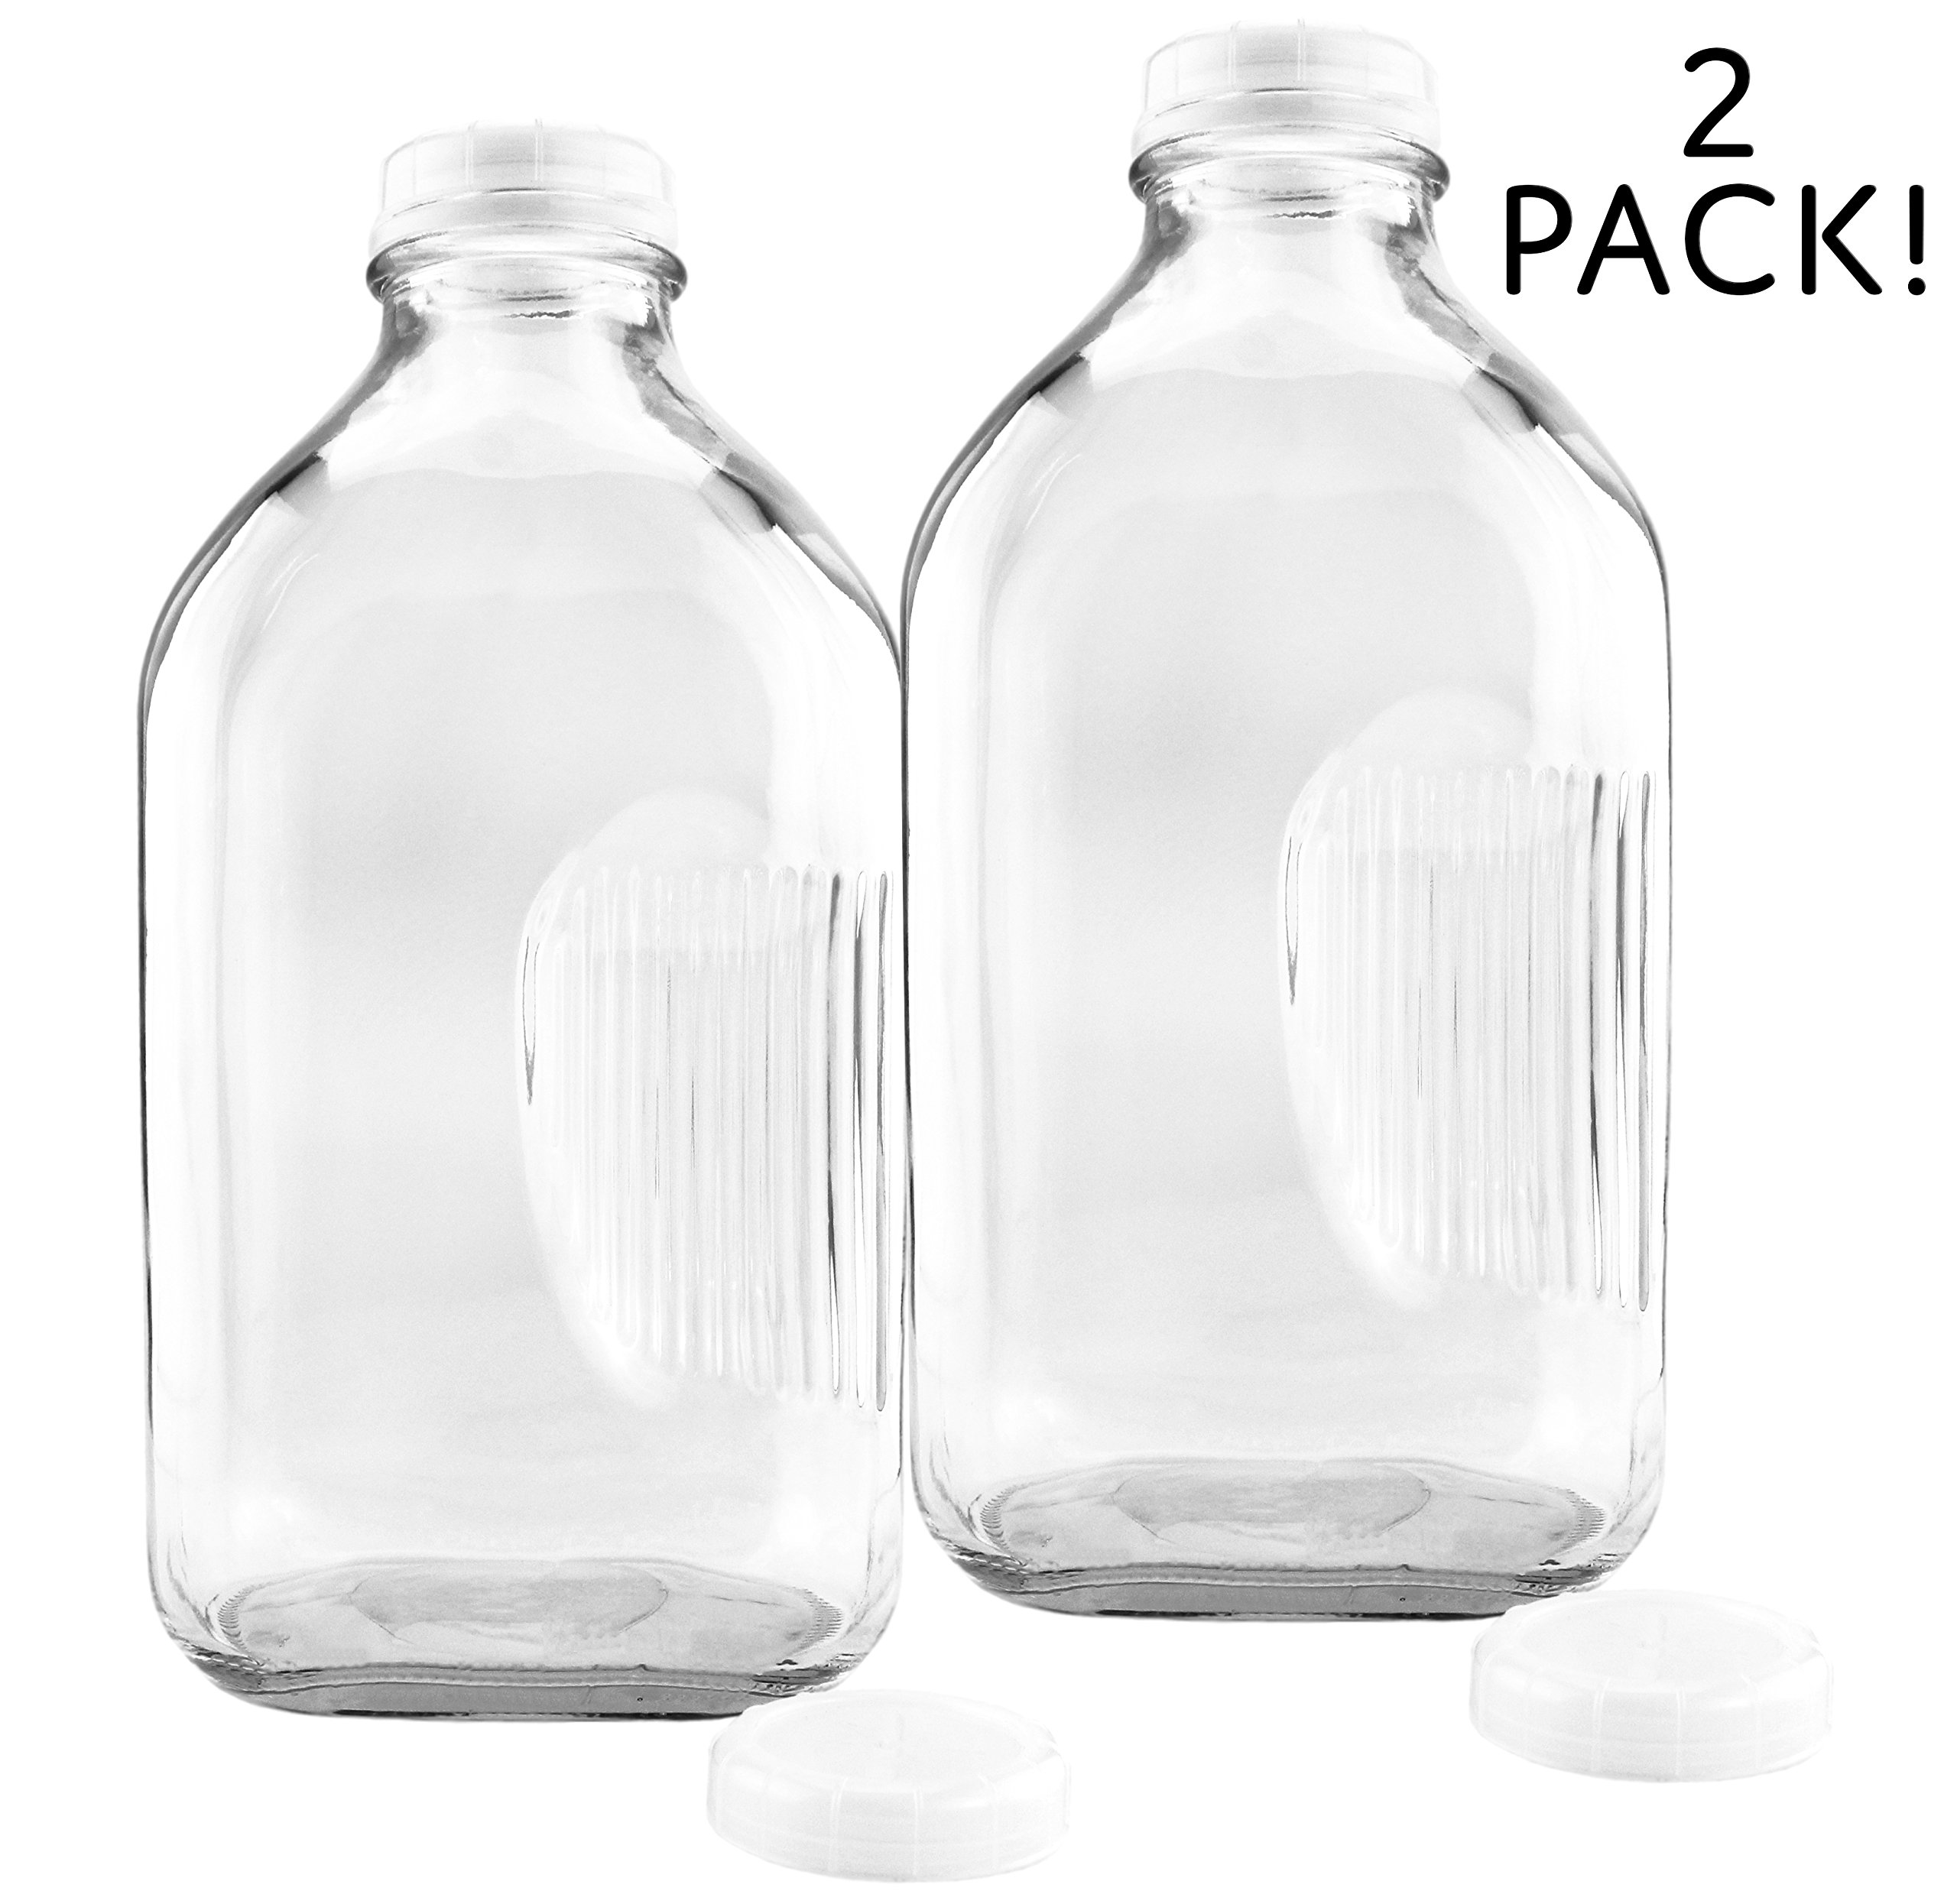 2-Quart Glass Milk Bottles w/ Side Grip (2-Pack); Clear Glass Rectangular Vintage Style Half Gallon Jugs Great for Storing Milk, Juice & Water in Fridge, Includes Extra Lids (2)